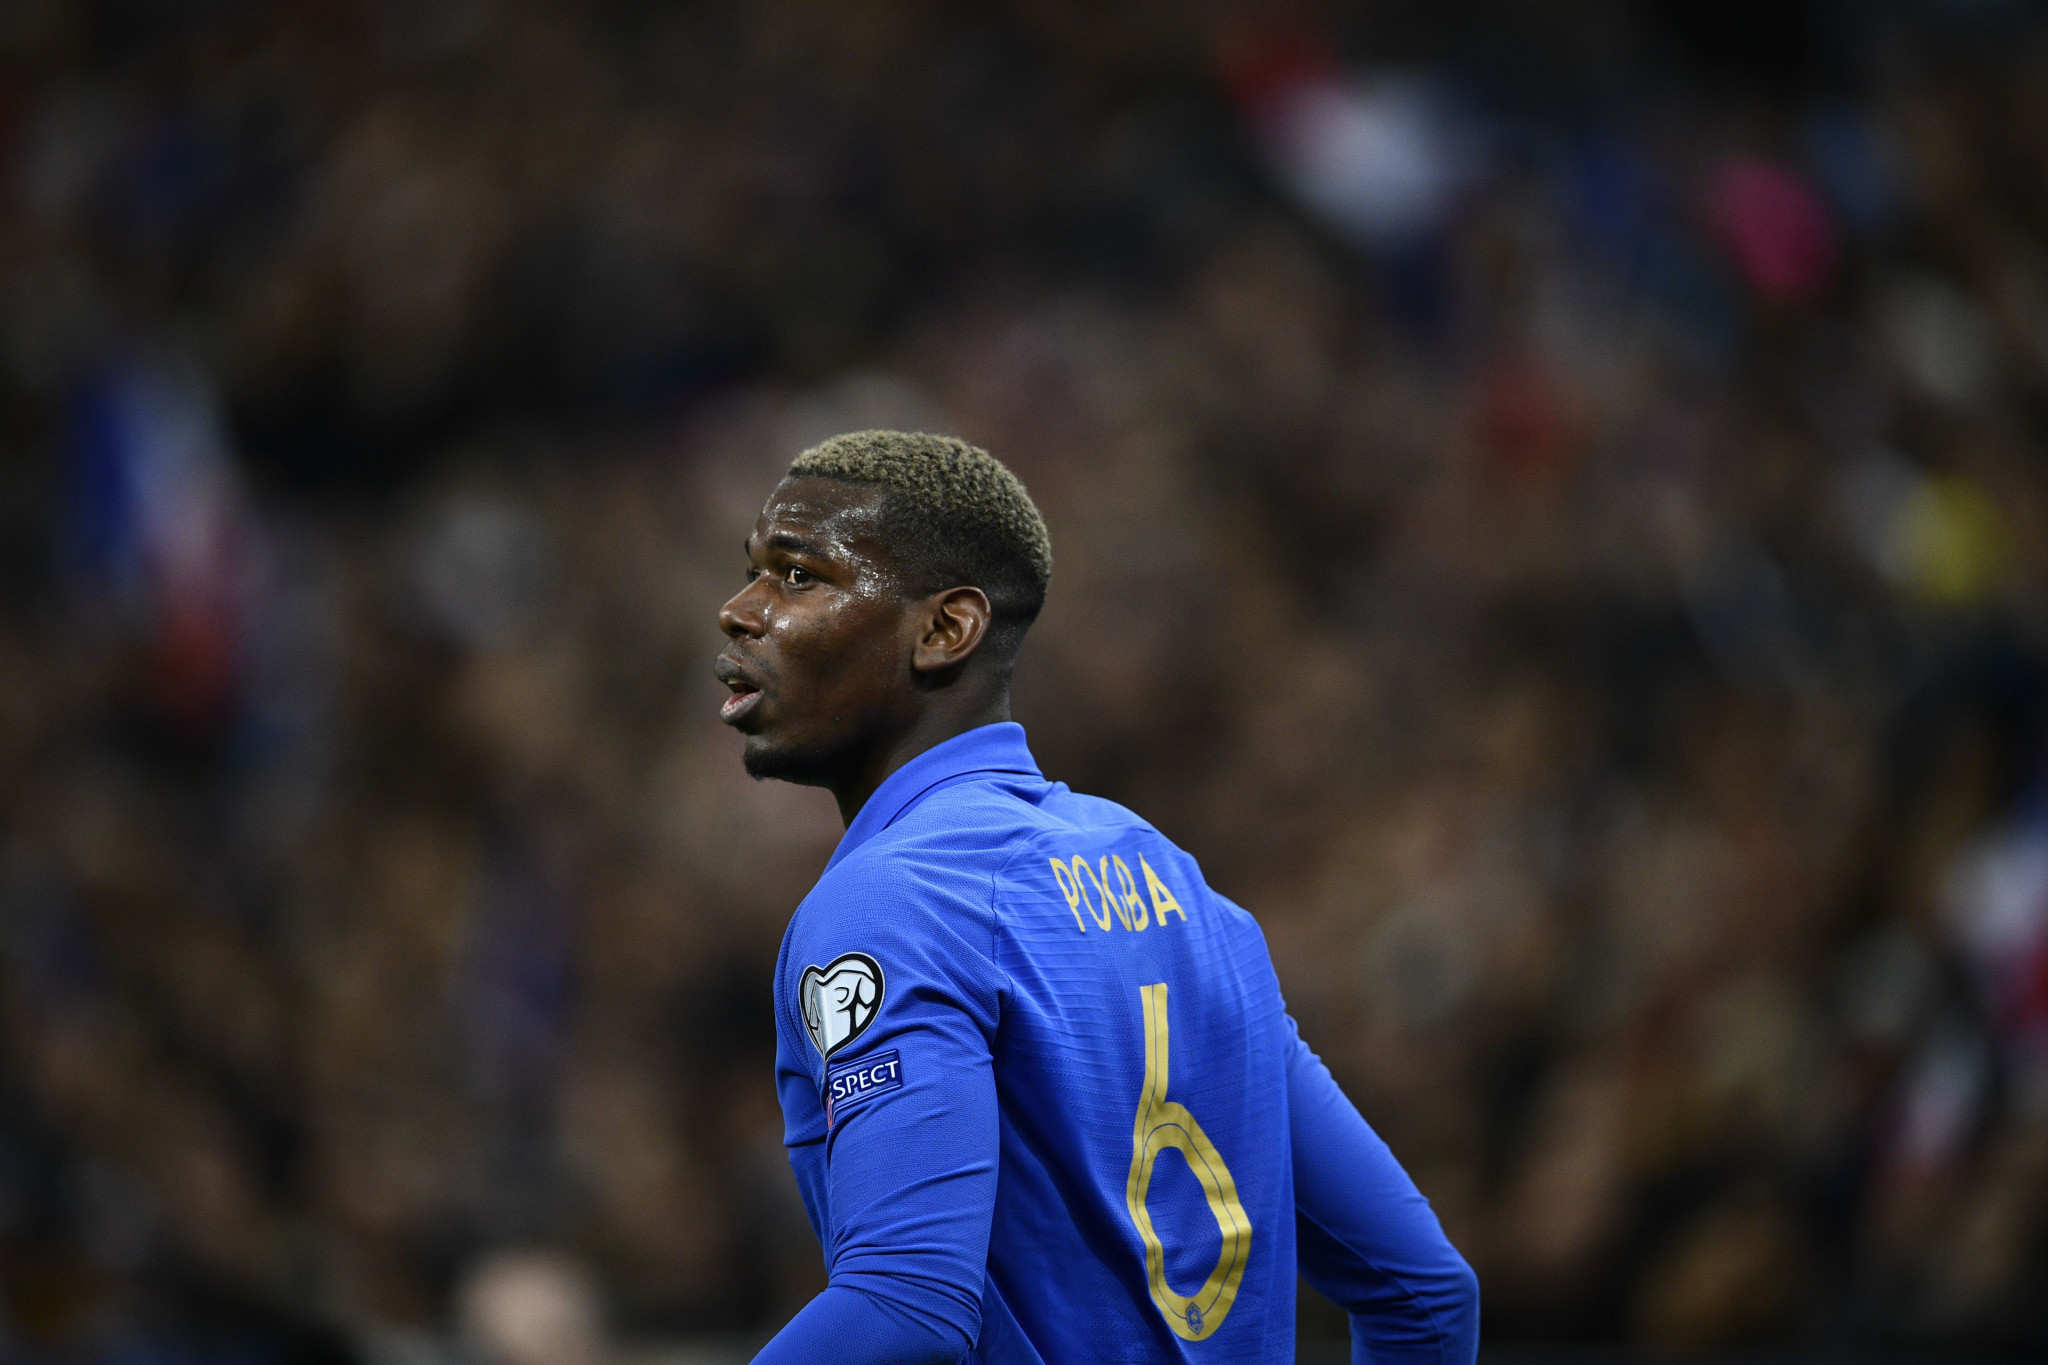 France's Paul Pogba won the 2013 event before winning the FIFA World Cup five years later ©Getty Images